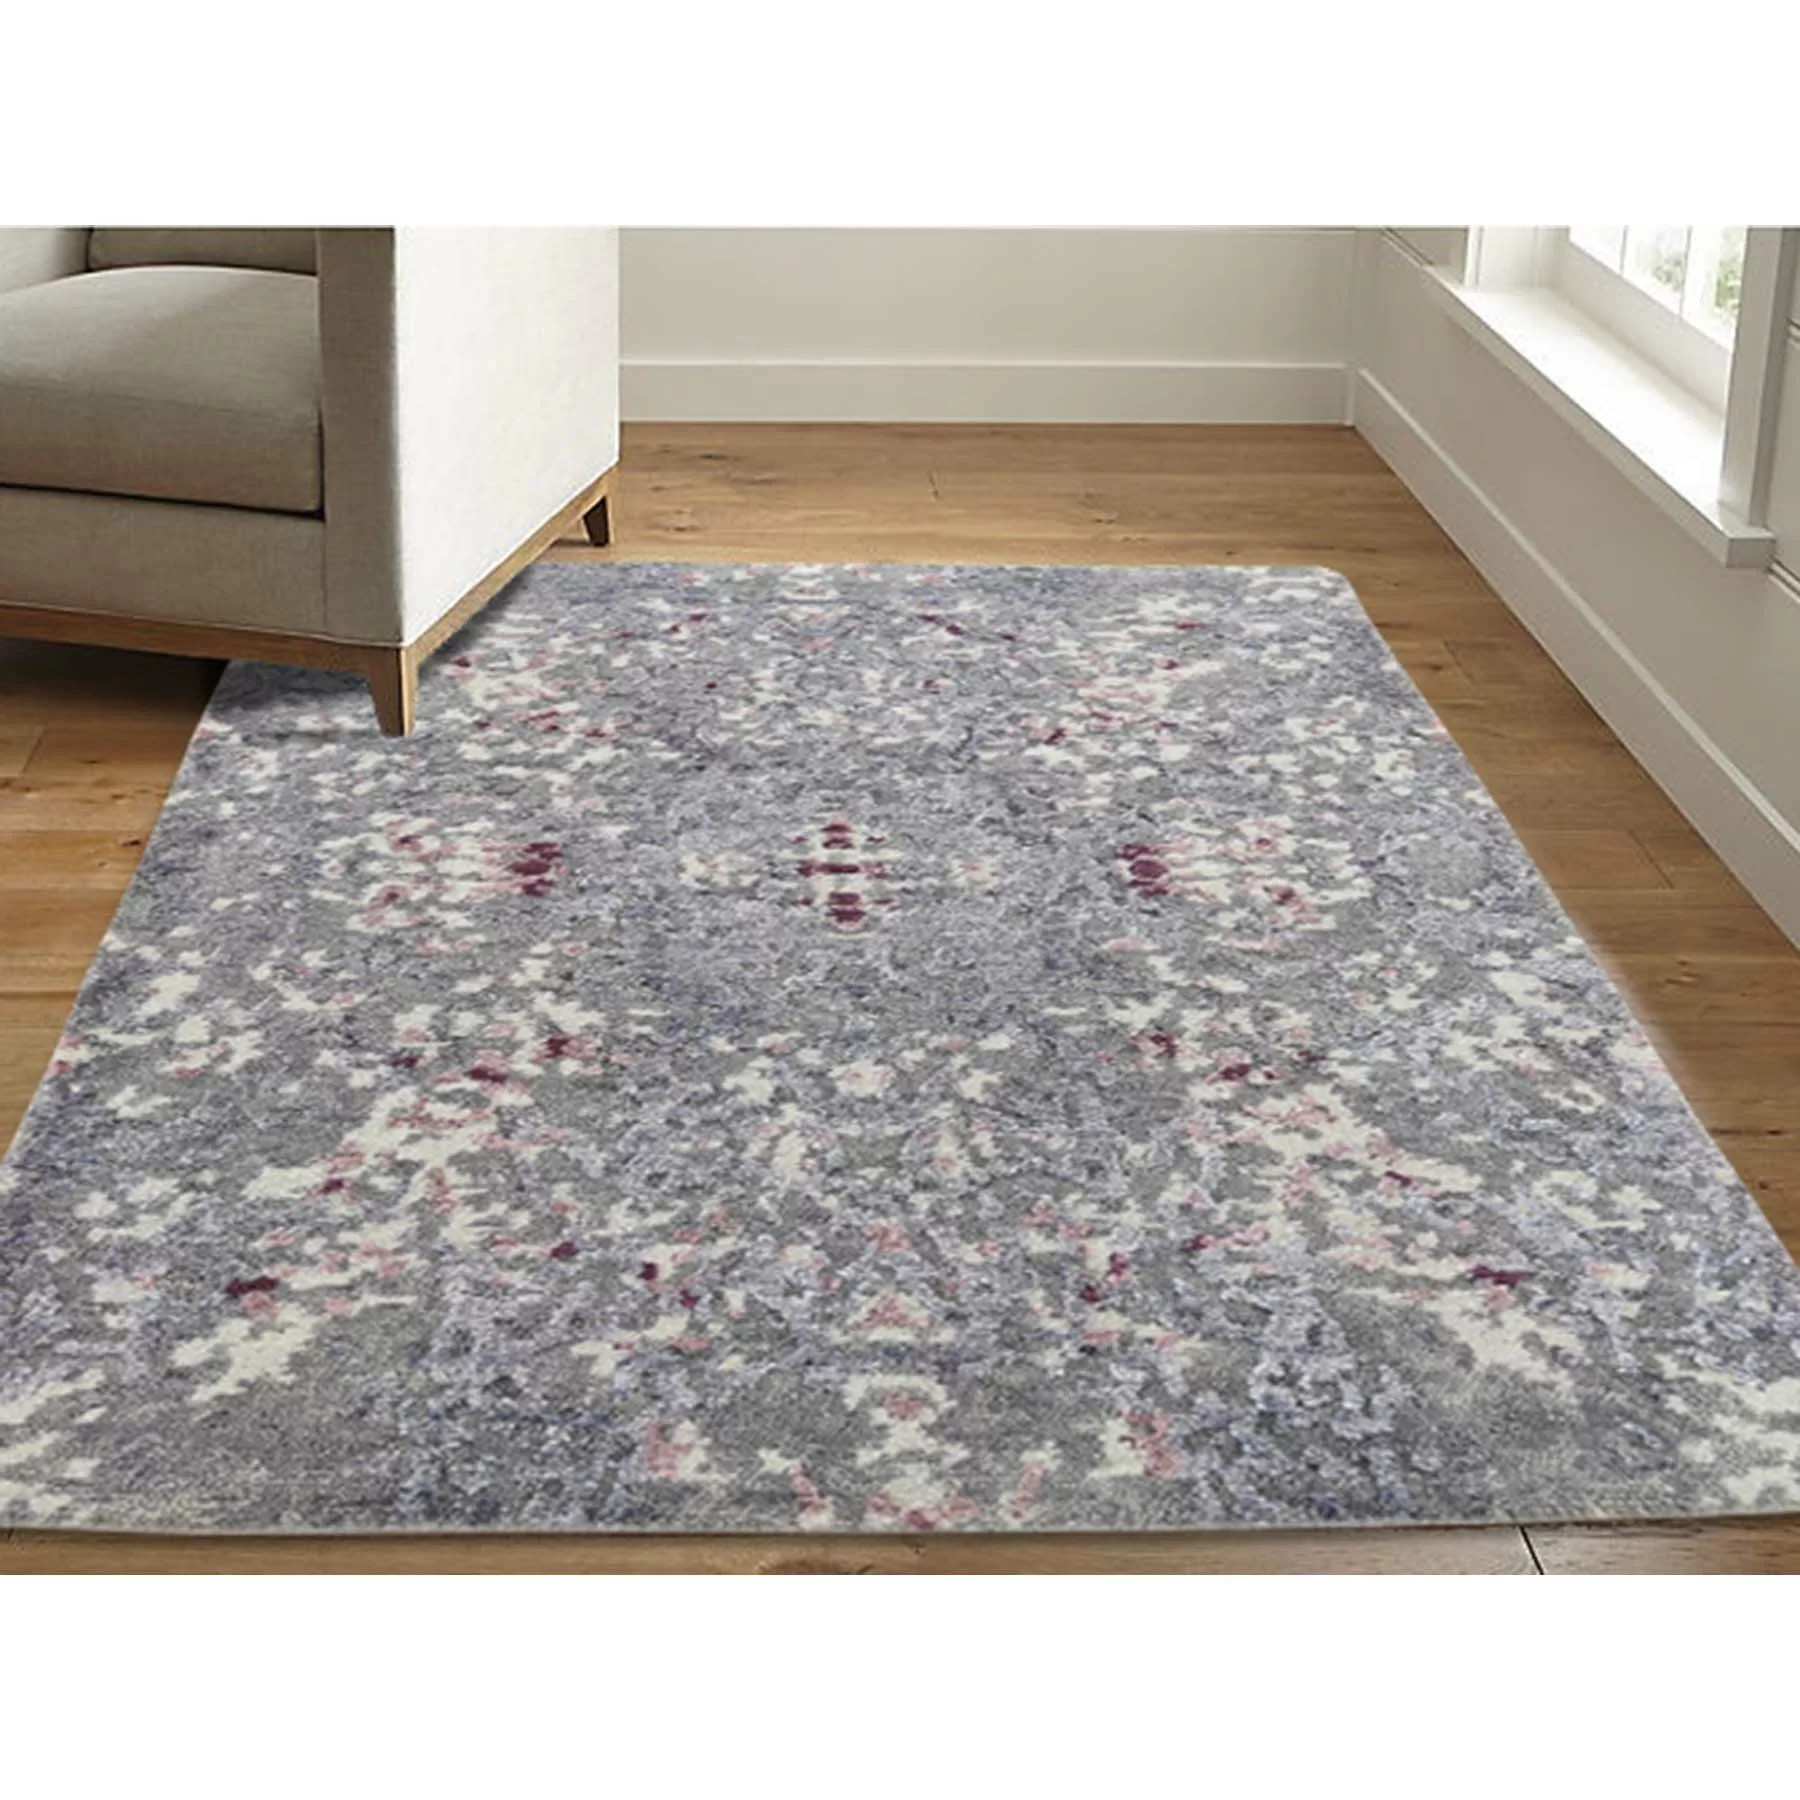 Grand Tapis Style Industriel | Le Style Industriel Made In The Usa ...